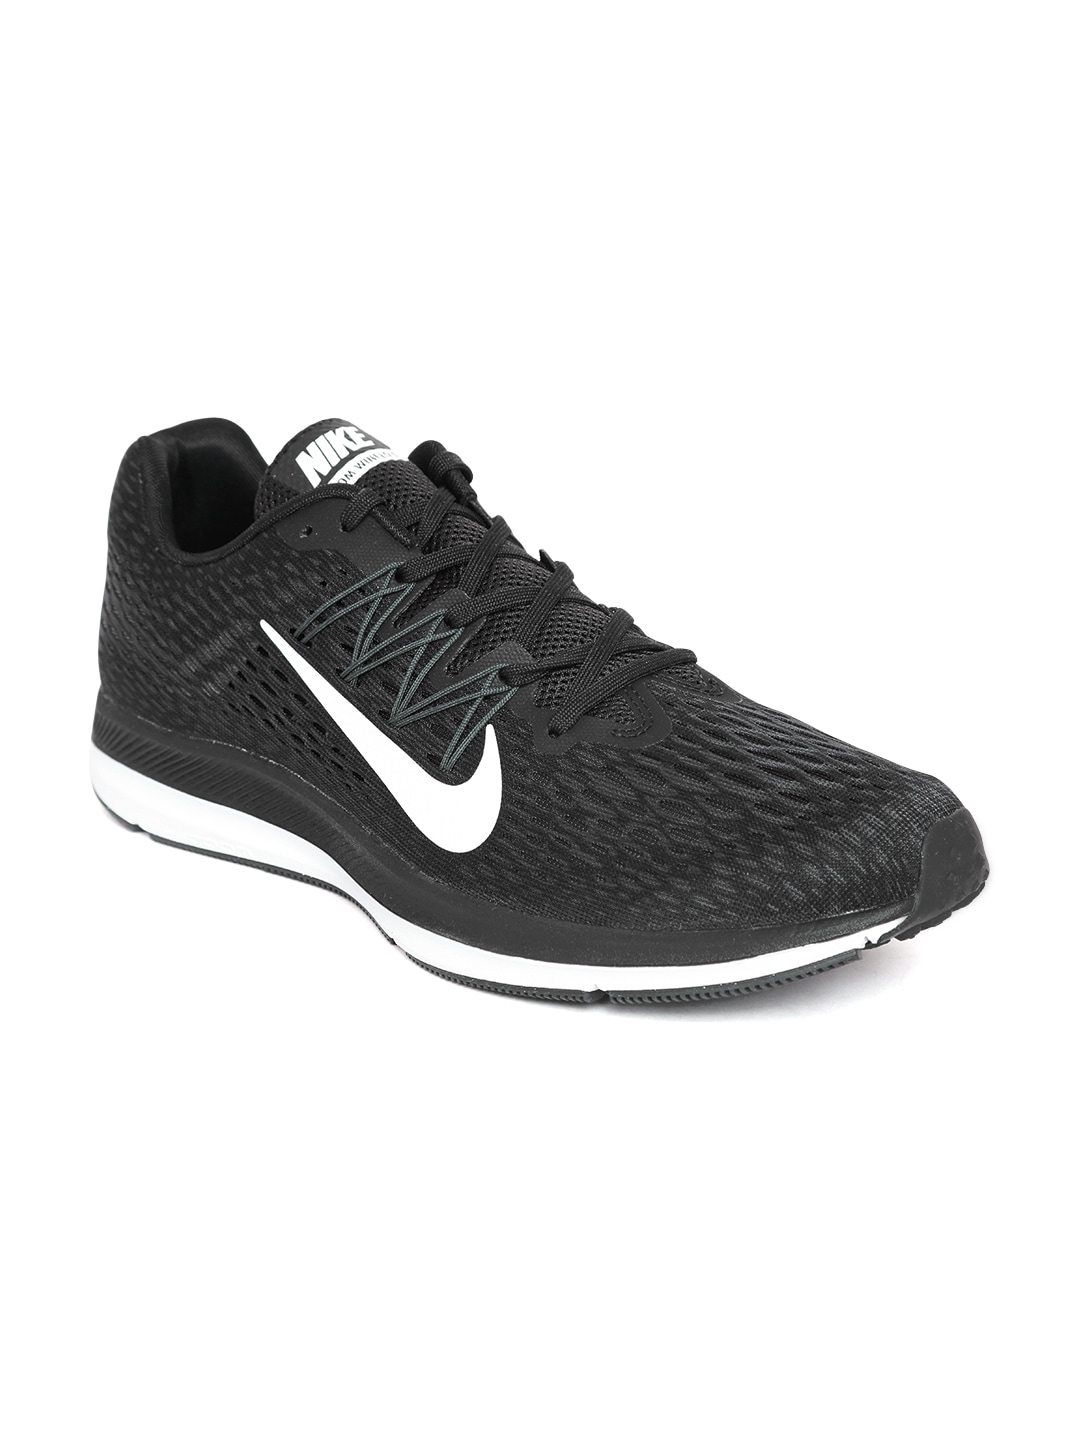 14fbfeebde0fa Nike Zoom Sports Shoes - Buy Nike Zoom Sports Shoes online in India